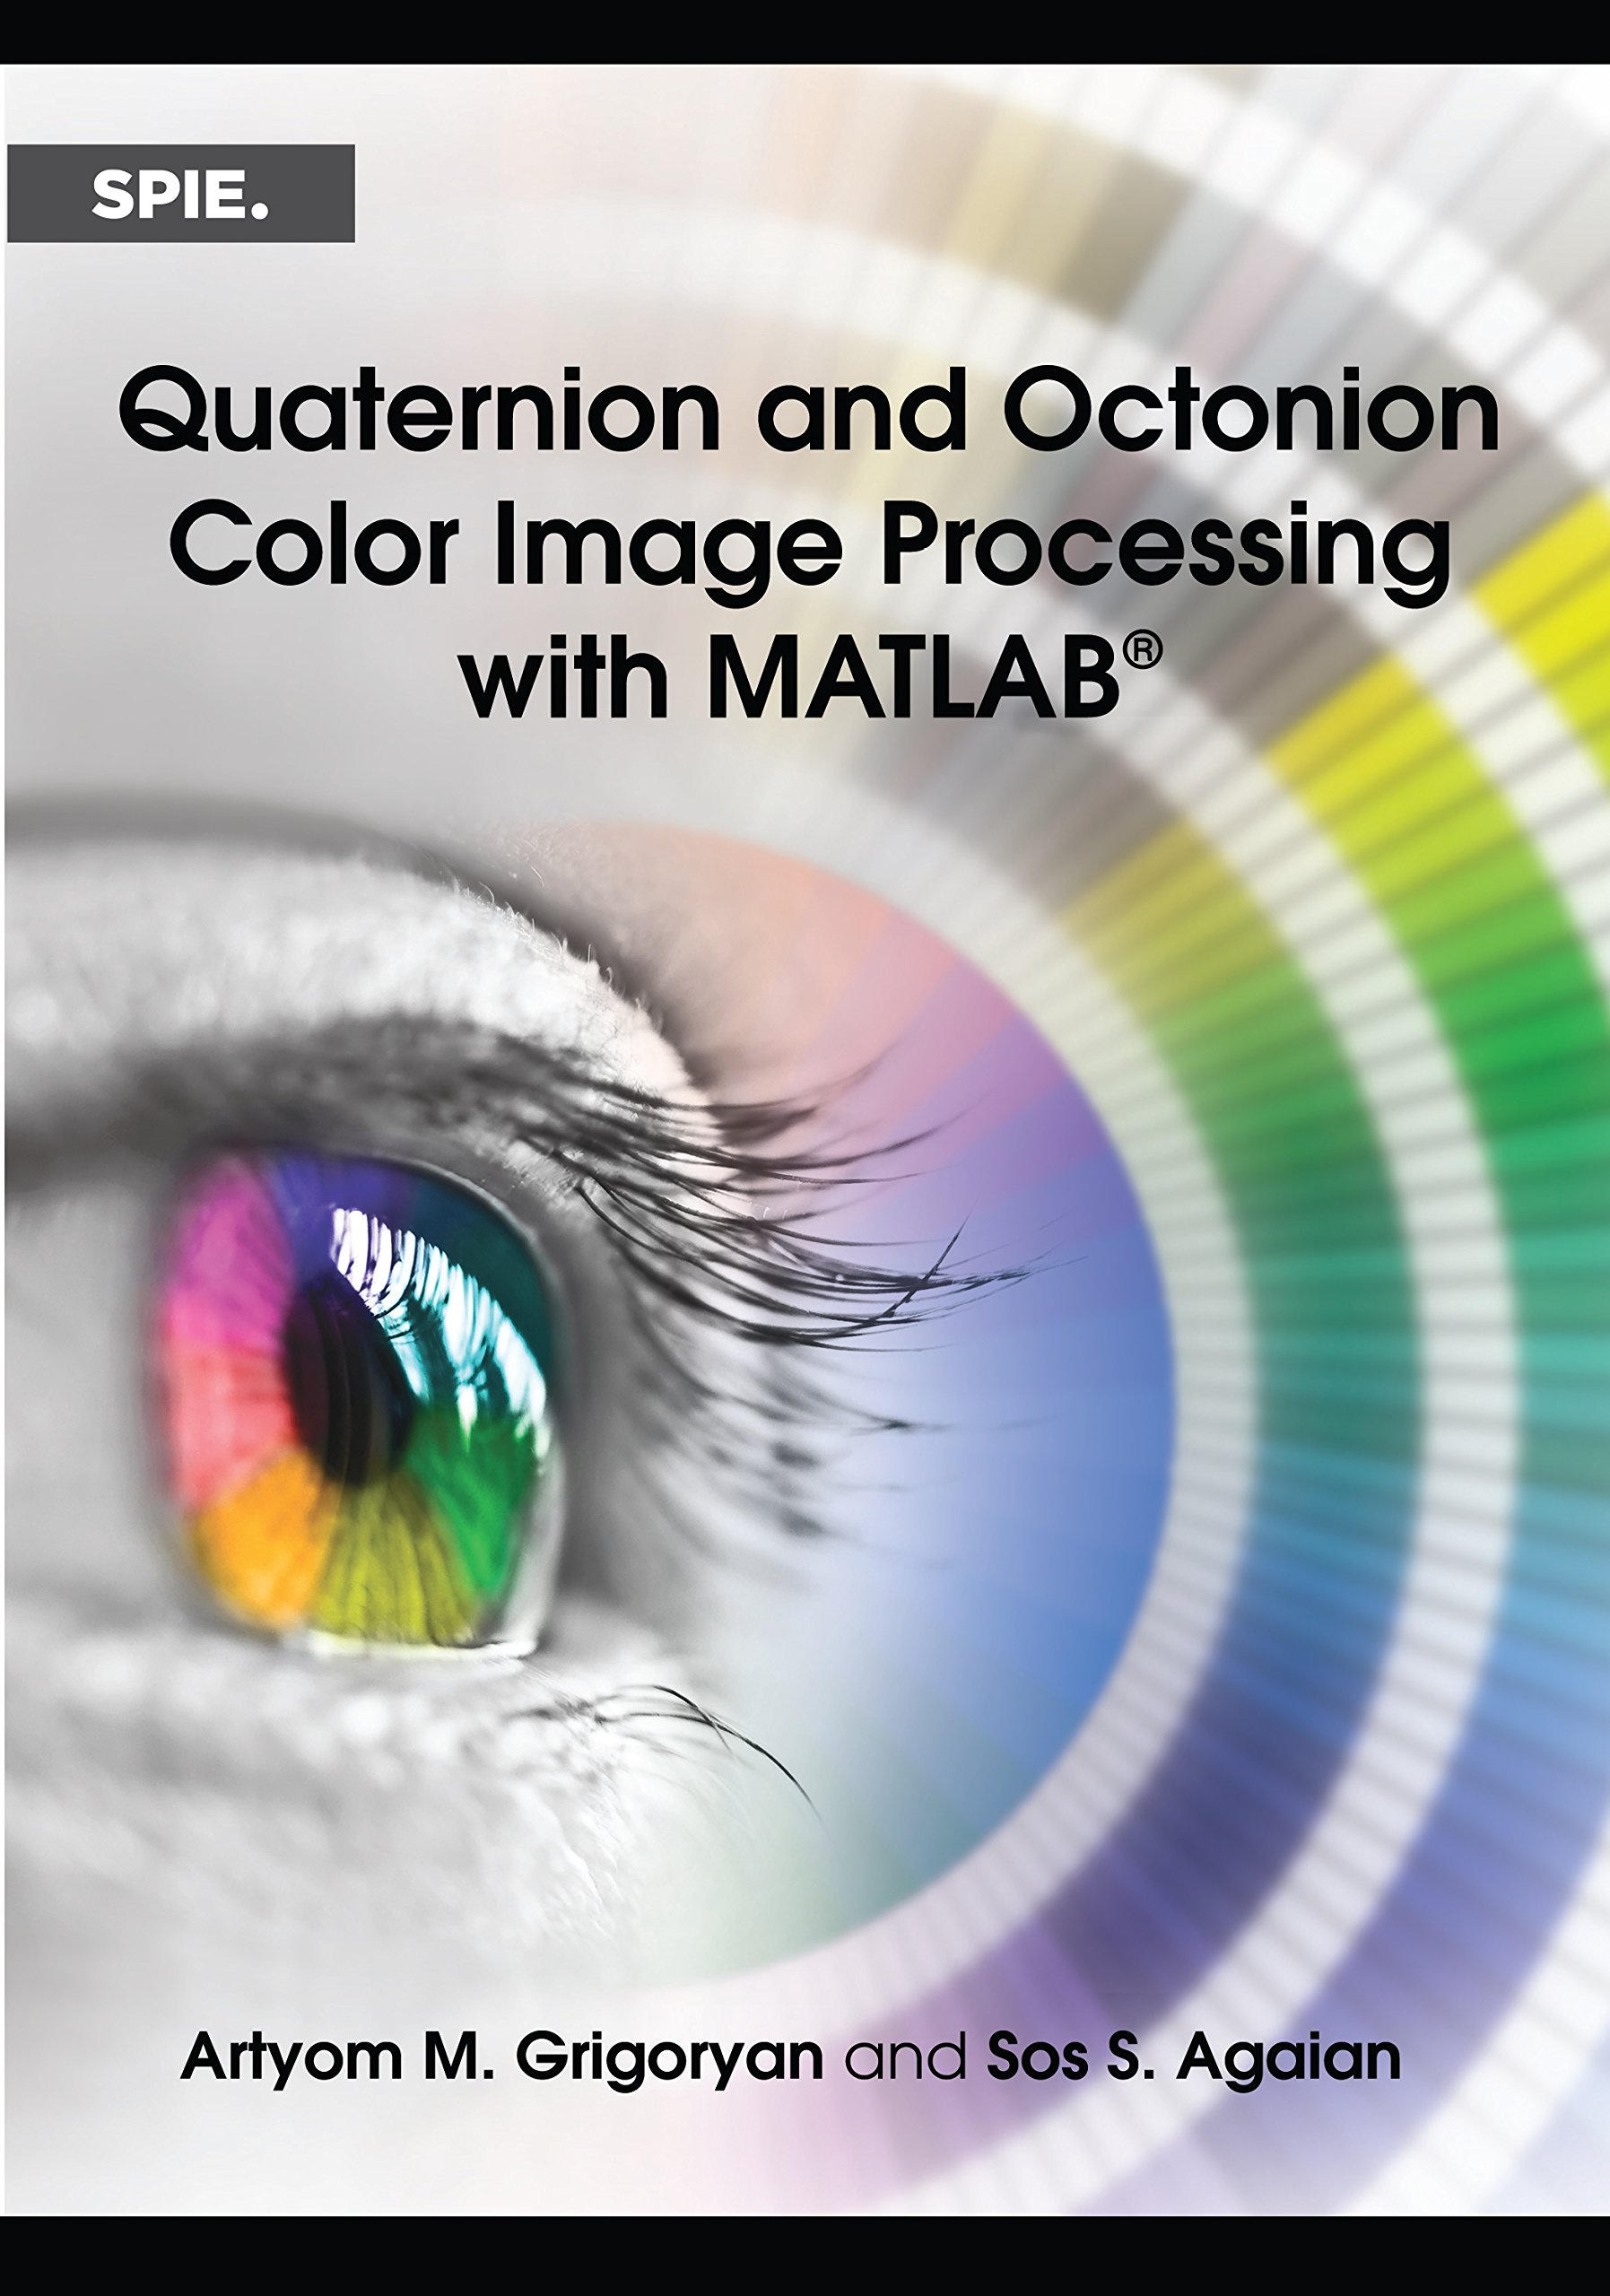 Quaternion and Octonion Color Image Processing with MATLAB